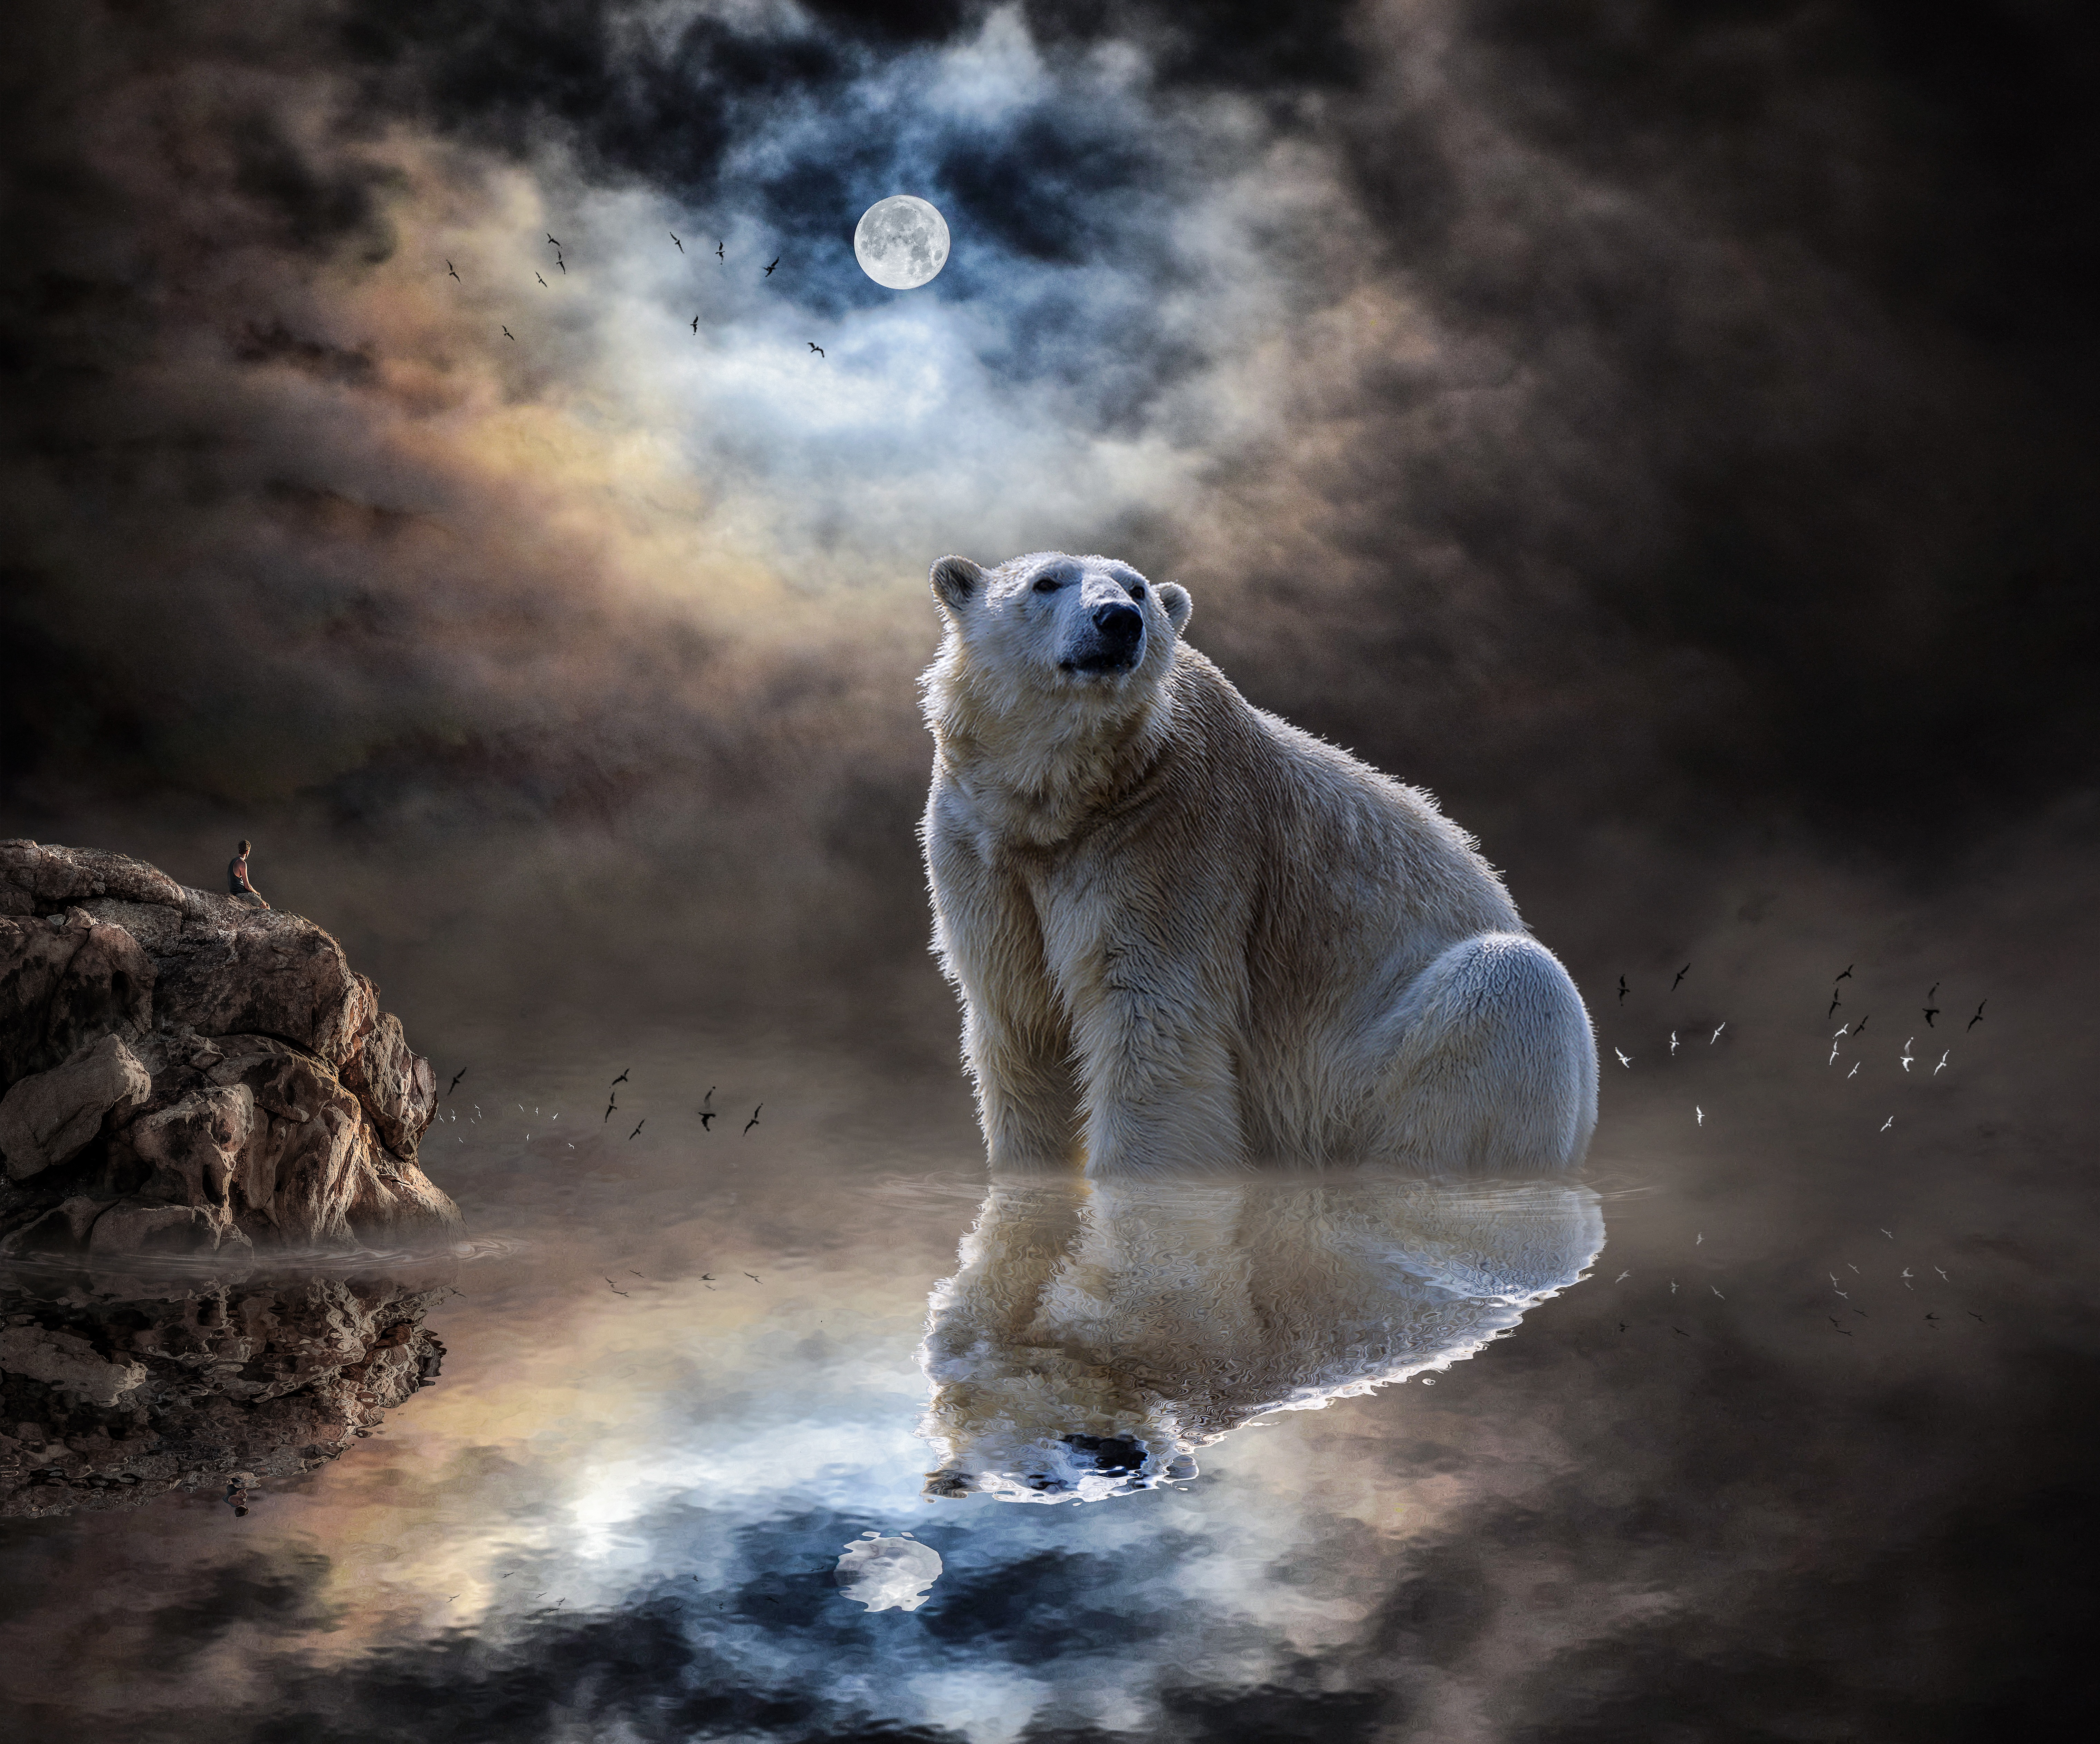 88371 download wallpaper Animals, Reflection, Ocean, Polar Bear, Mammal screensavers and pictures for free